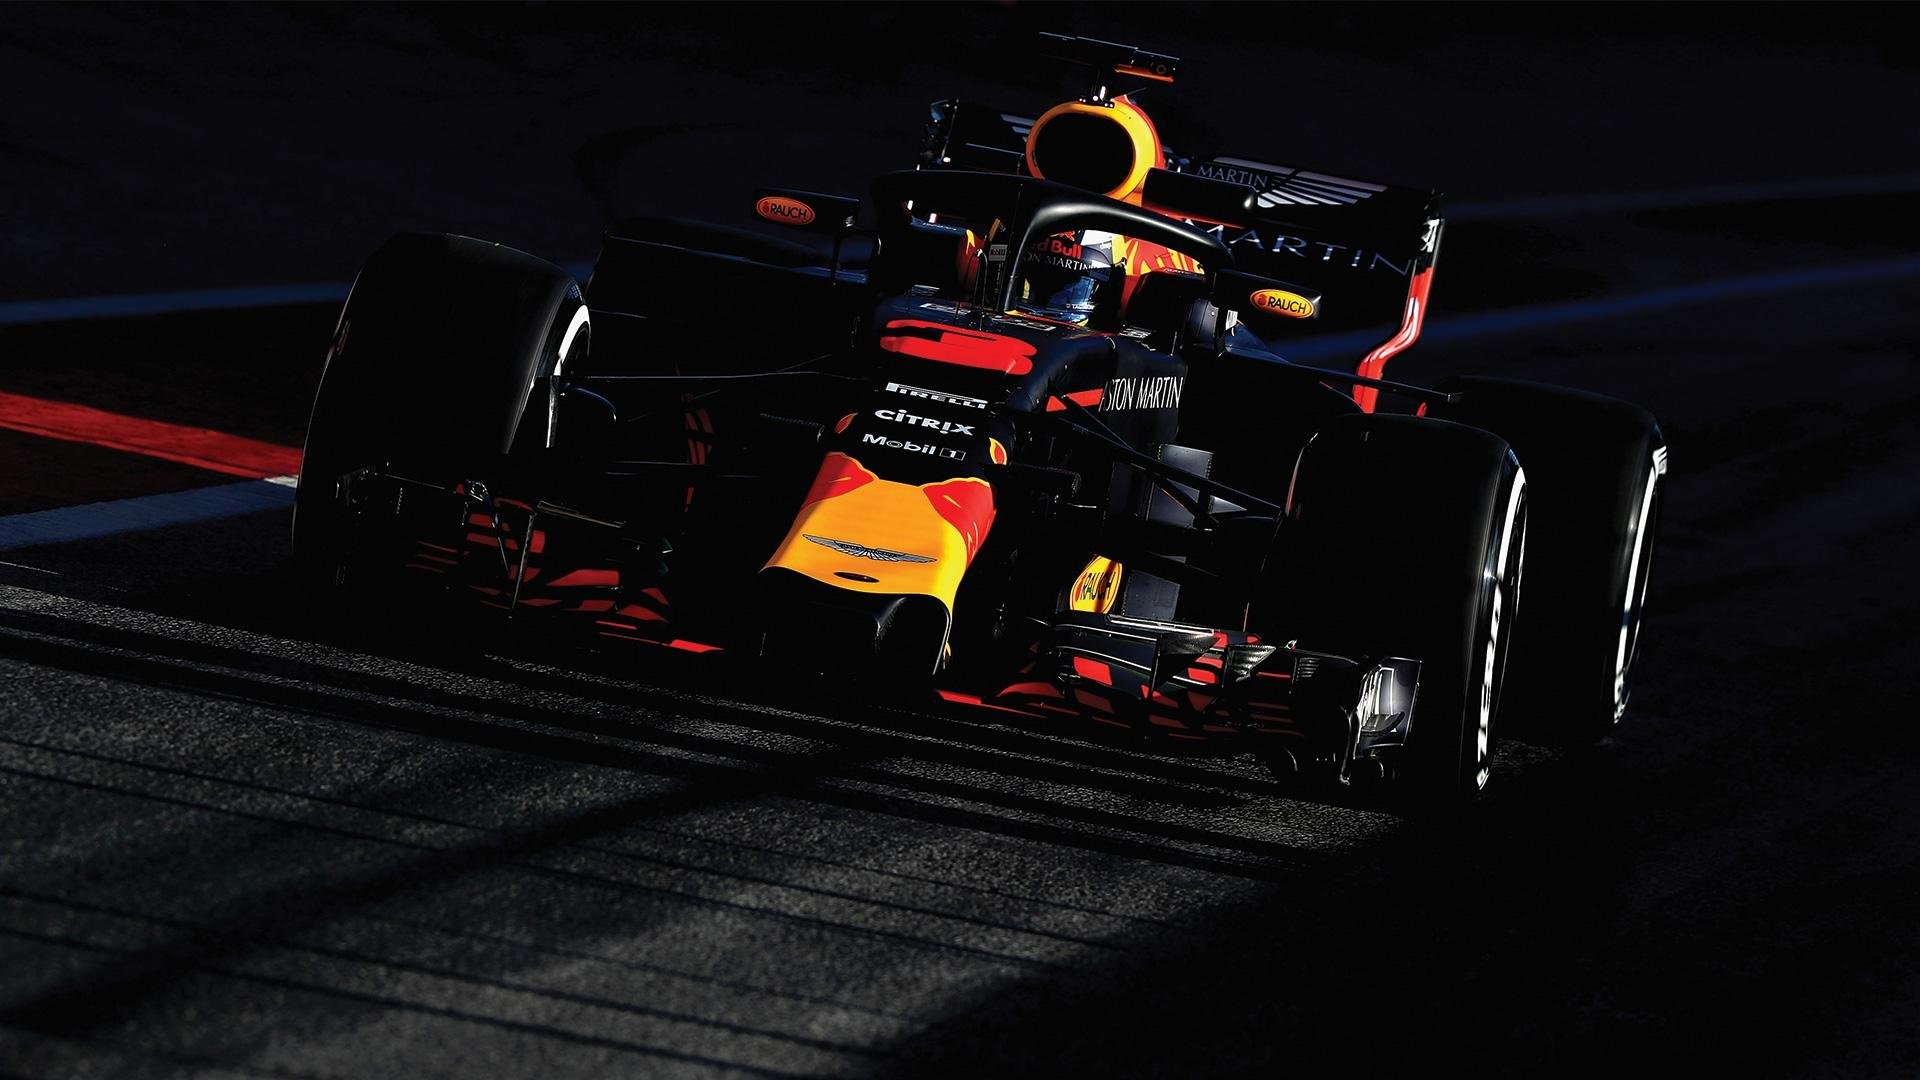 F1 Wallpaper 1920x1080 Posted By Michelle Simpson